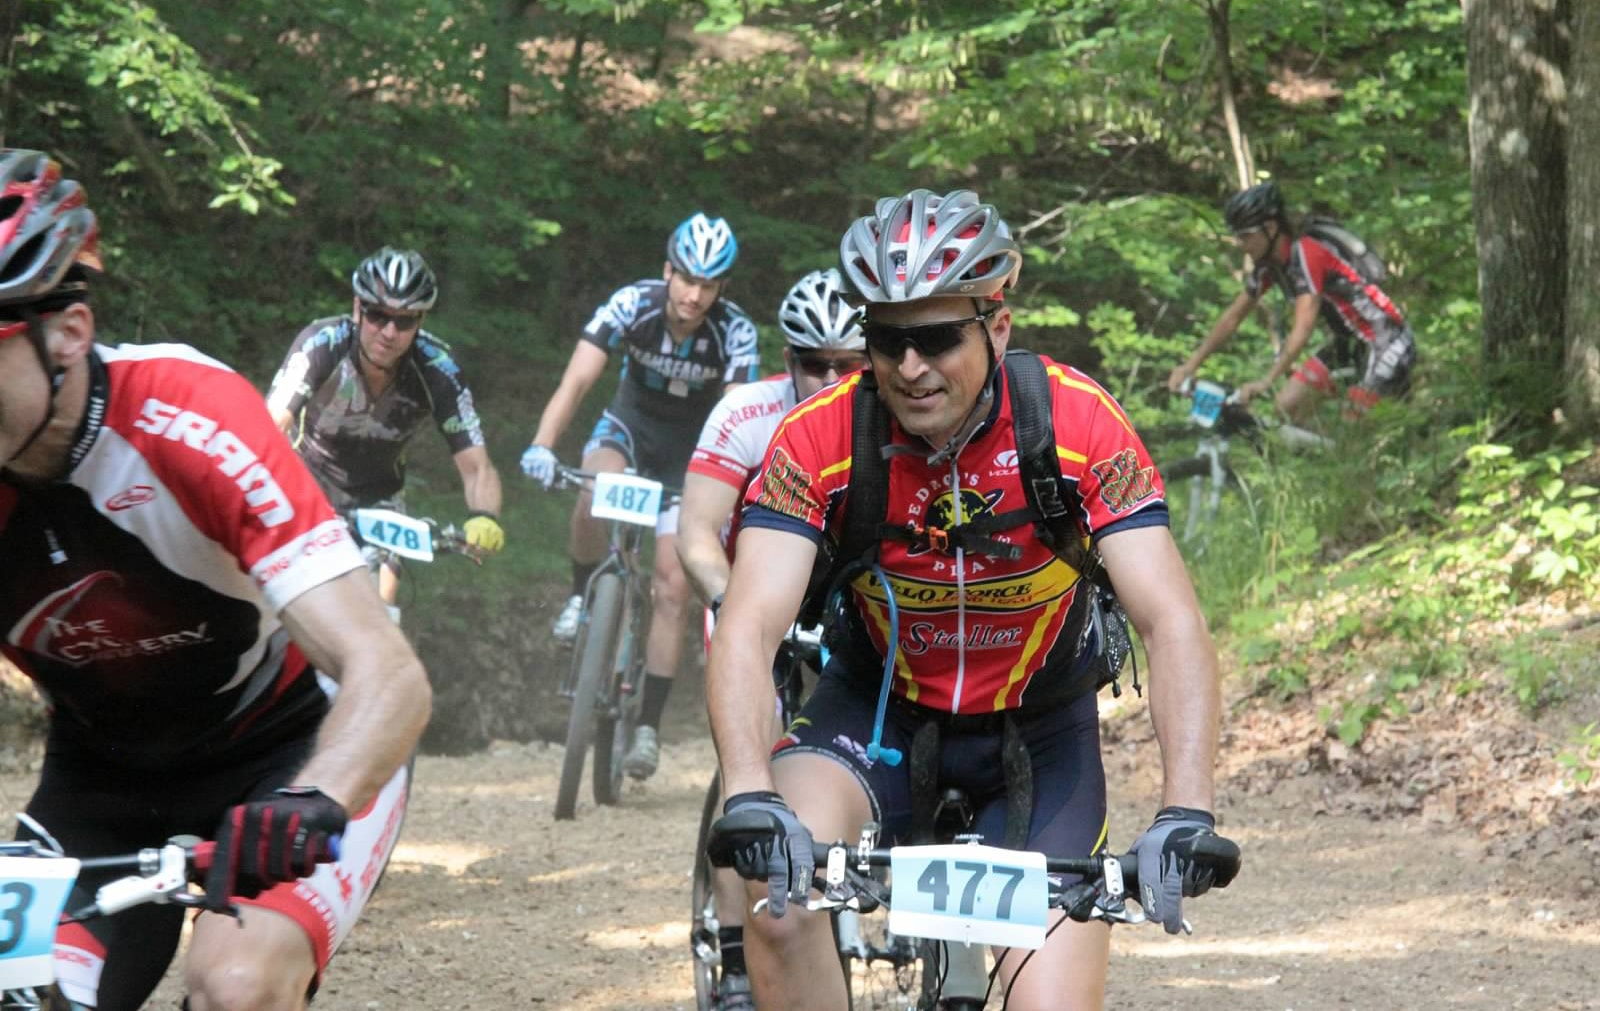 Ted Weiss, Ph.D., associate professor of nutrition and dietetics, turns on the juice as he bikes during a race.